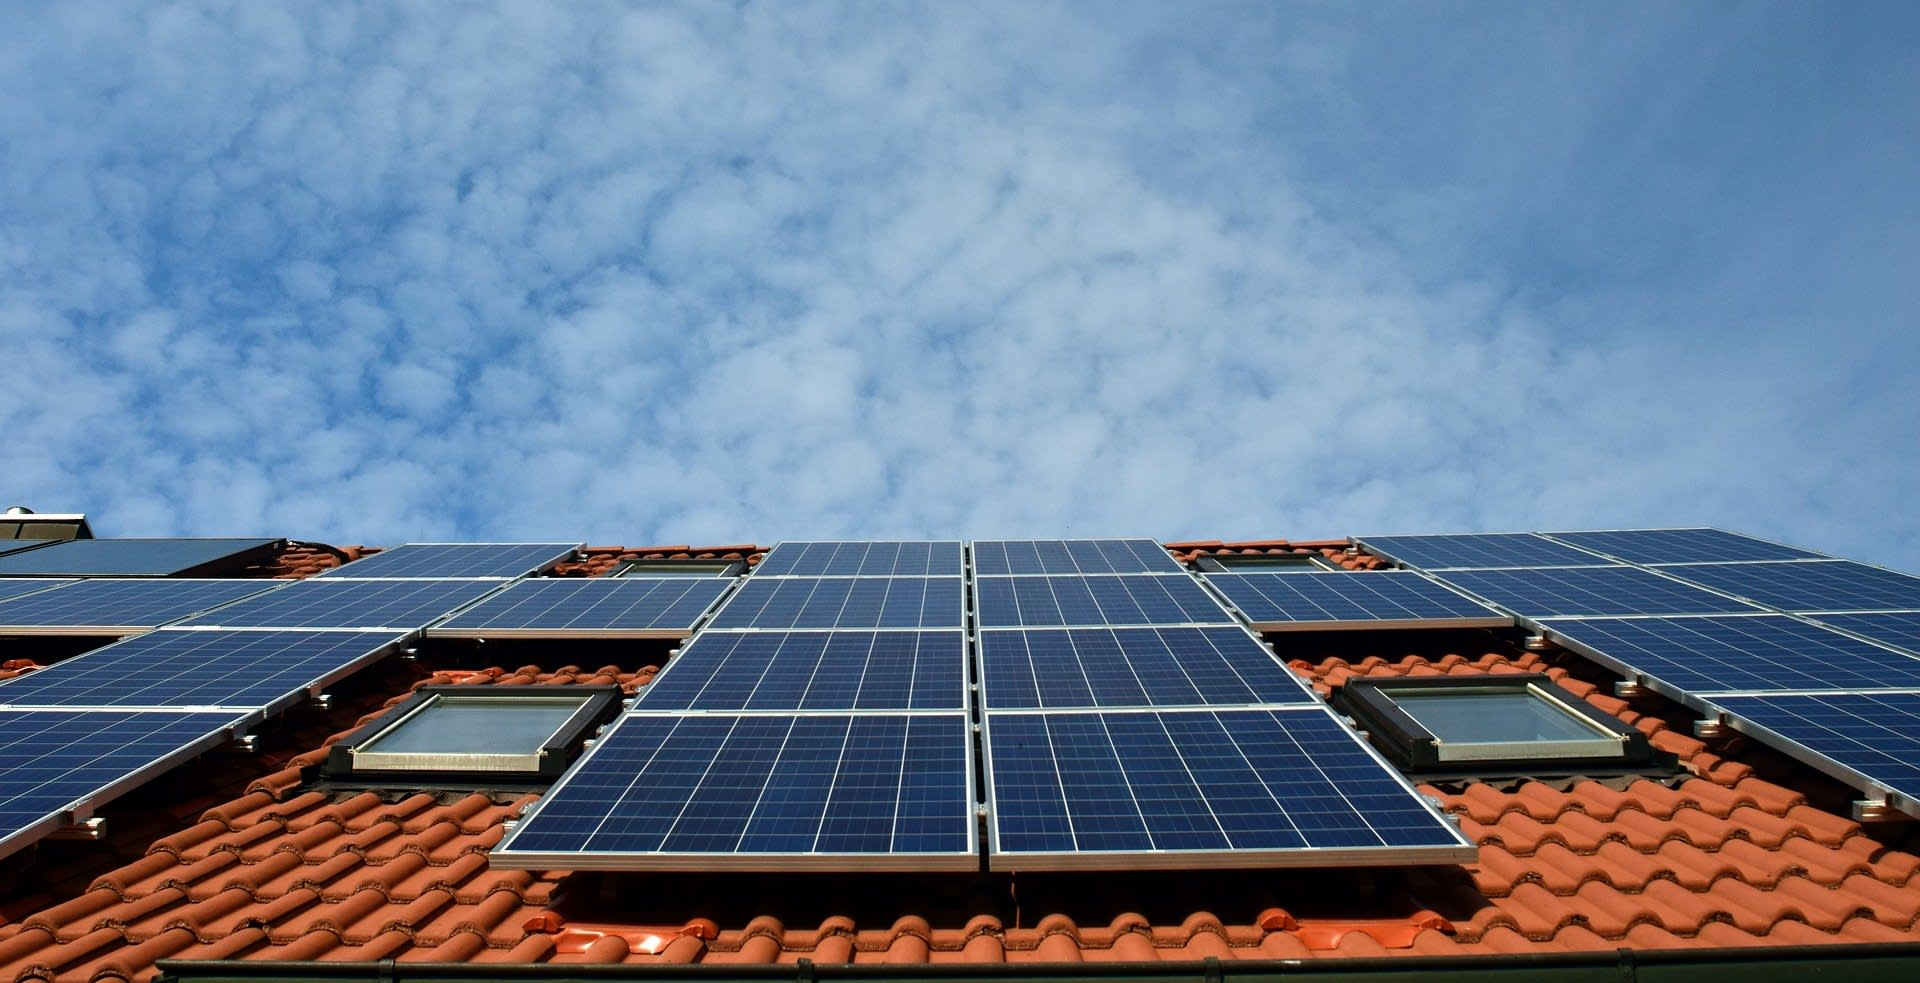 Energy performance 'virtually unspoken' of in mortgage advice